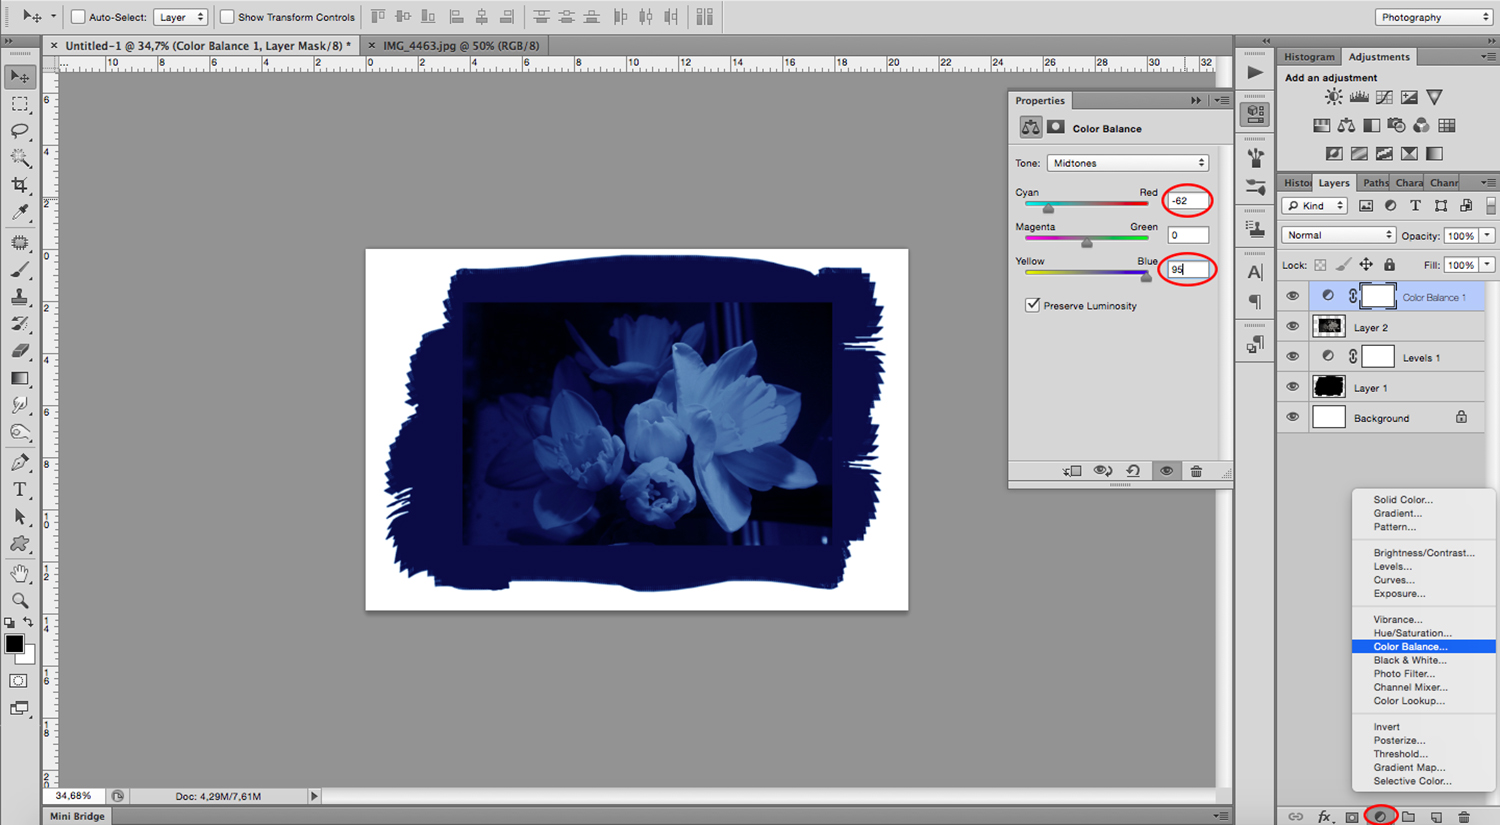 How to Mimic a Digital Cyanotype Using Photoshop with Ease